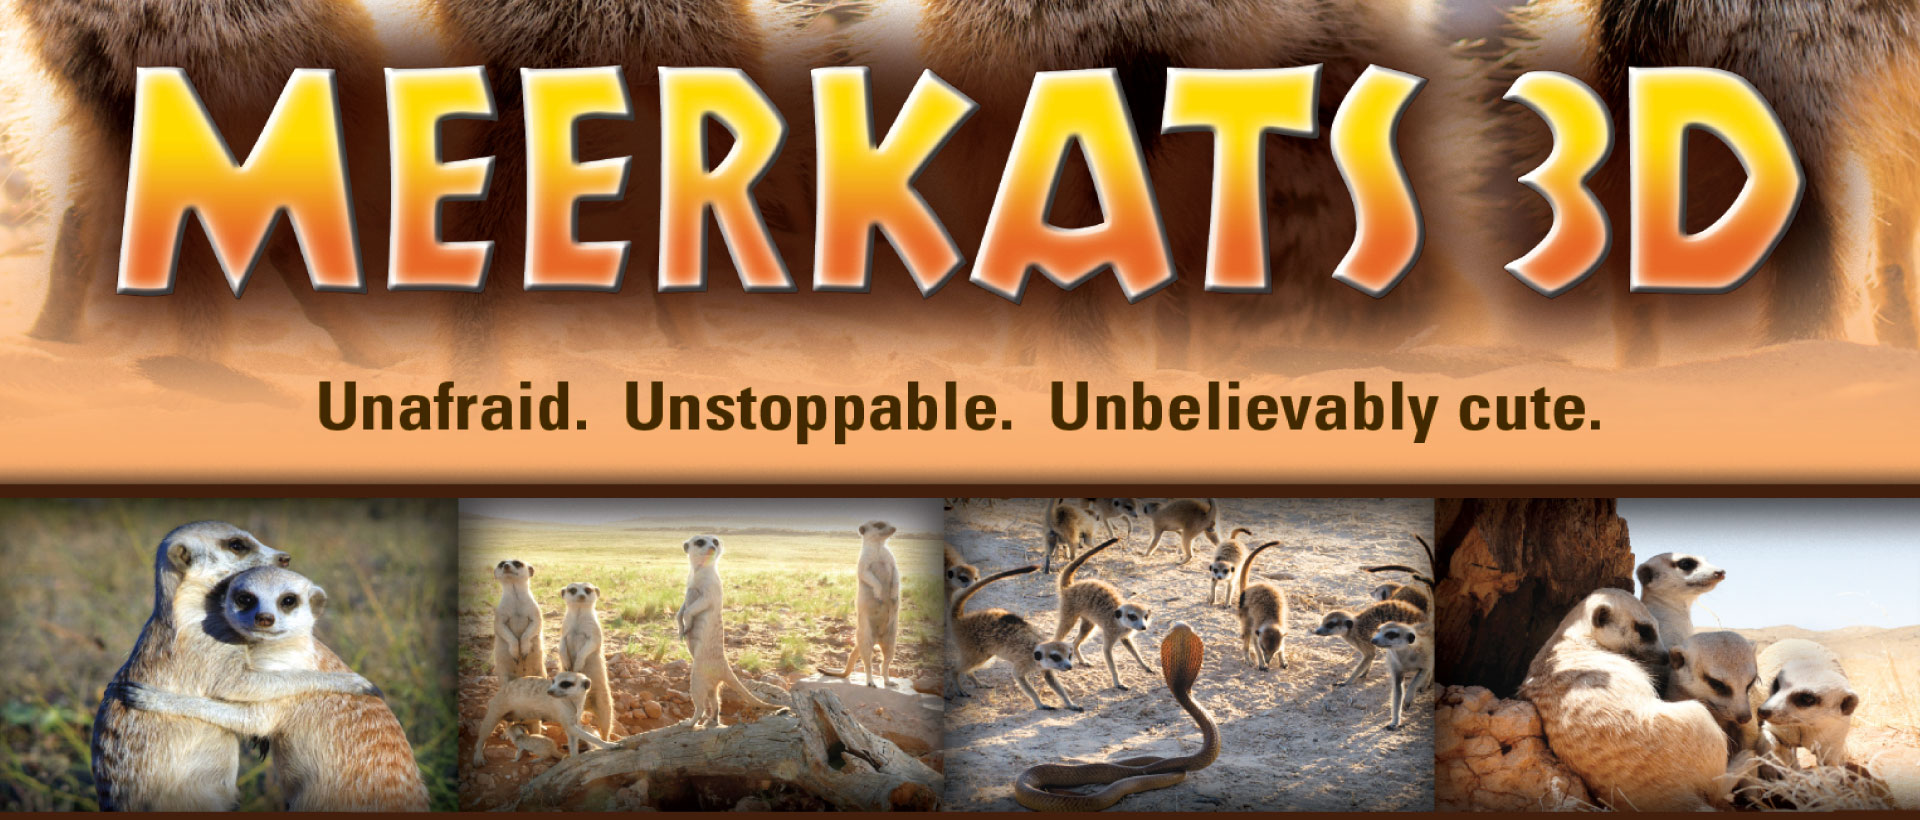 Meerkats 3D image with photos of meerkats hugging each other, in a group family, fighting of a snake